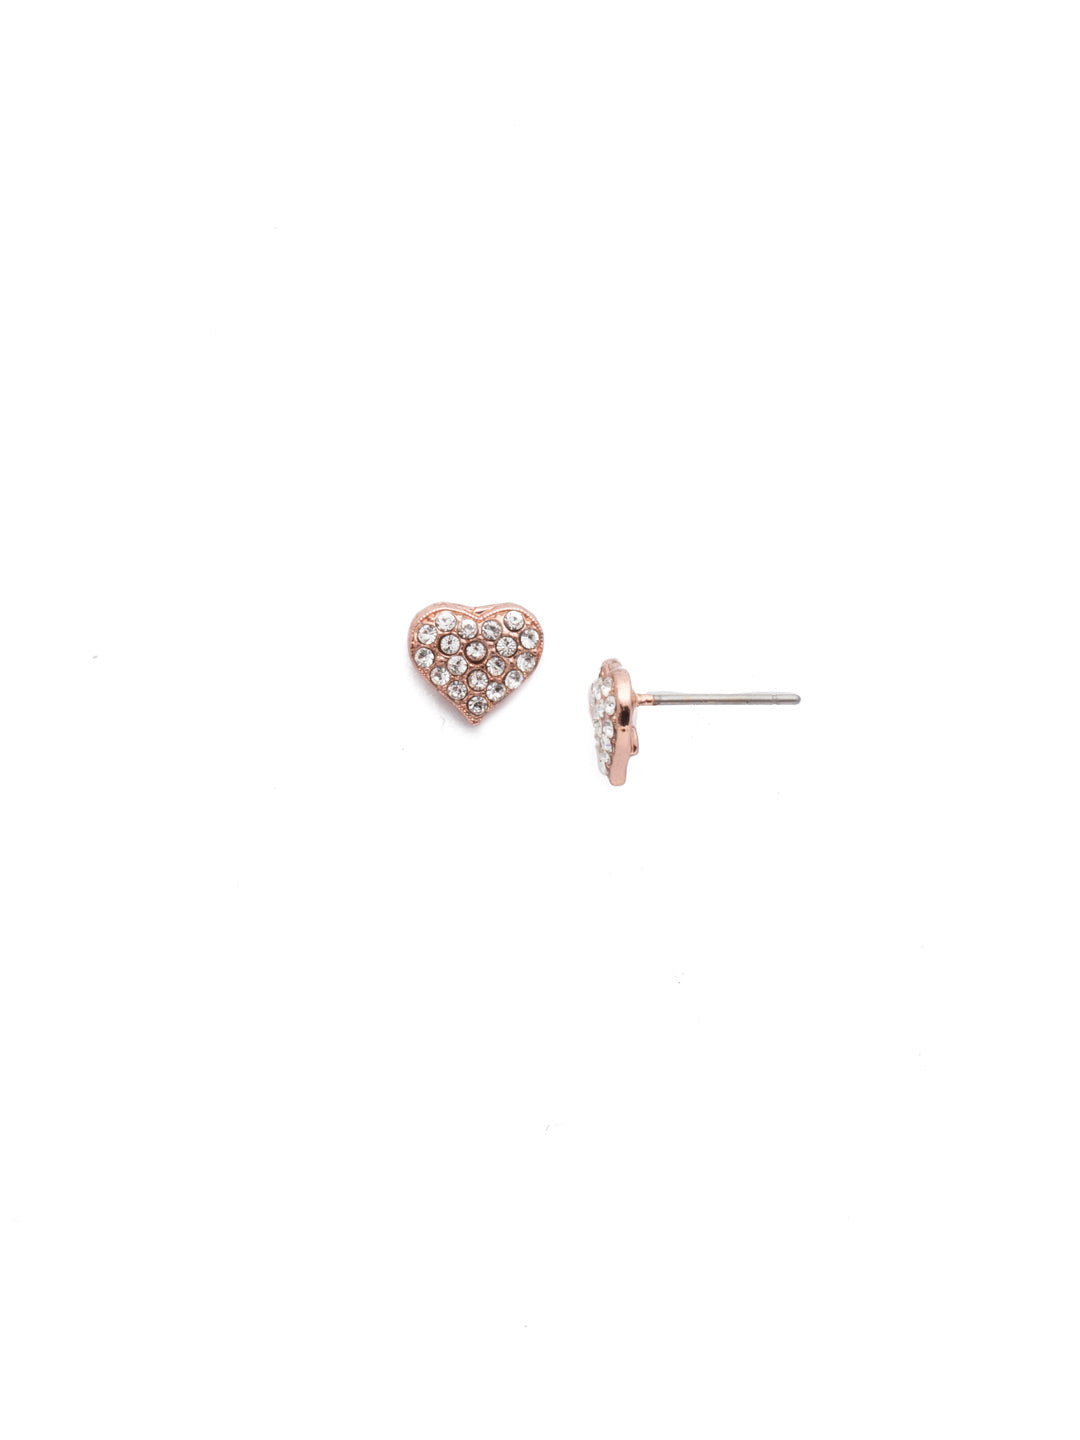 Mini Pave Heart Stud Earrings - ESP72RGCRY